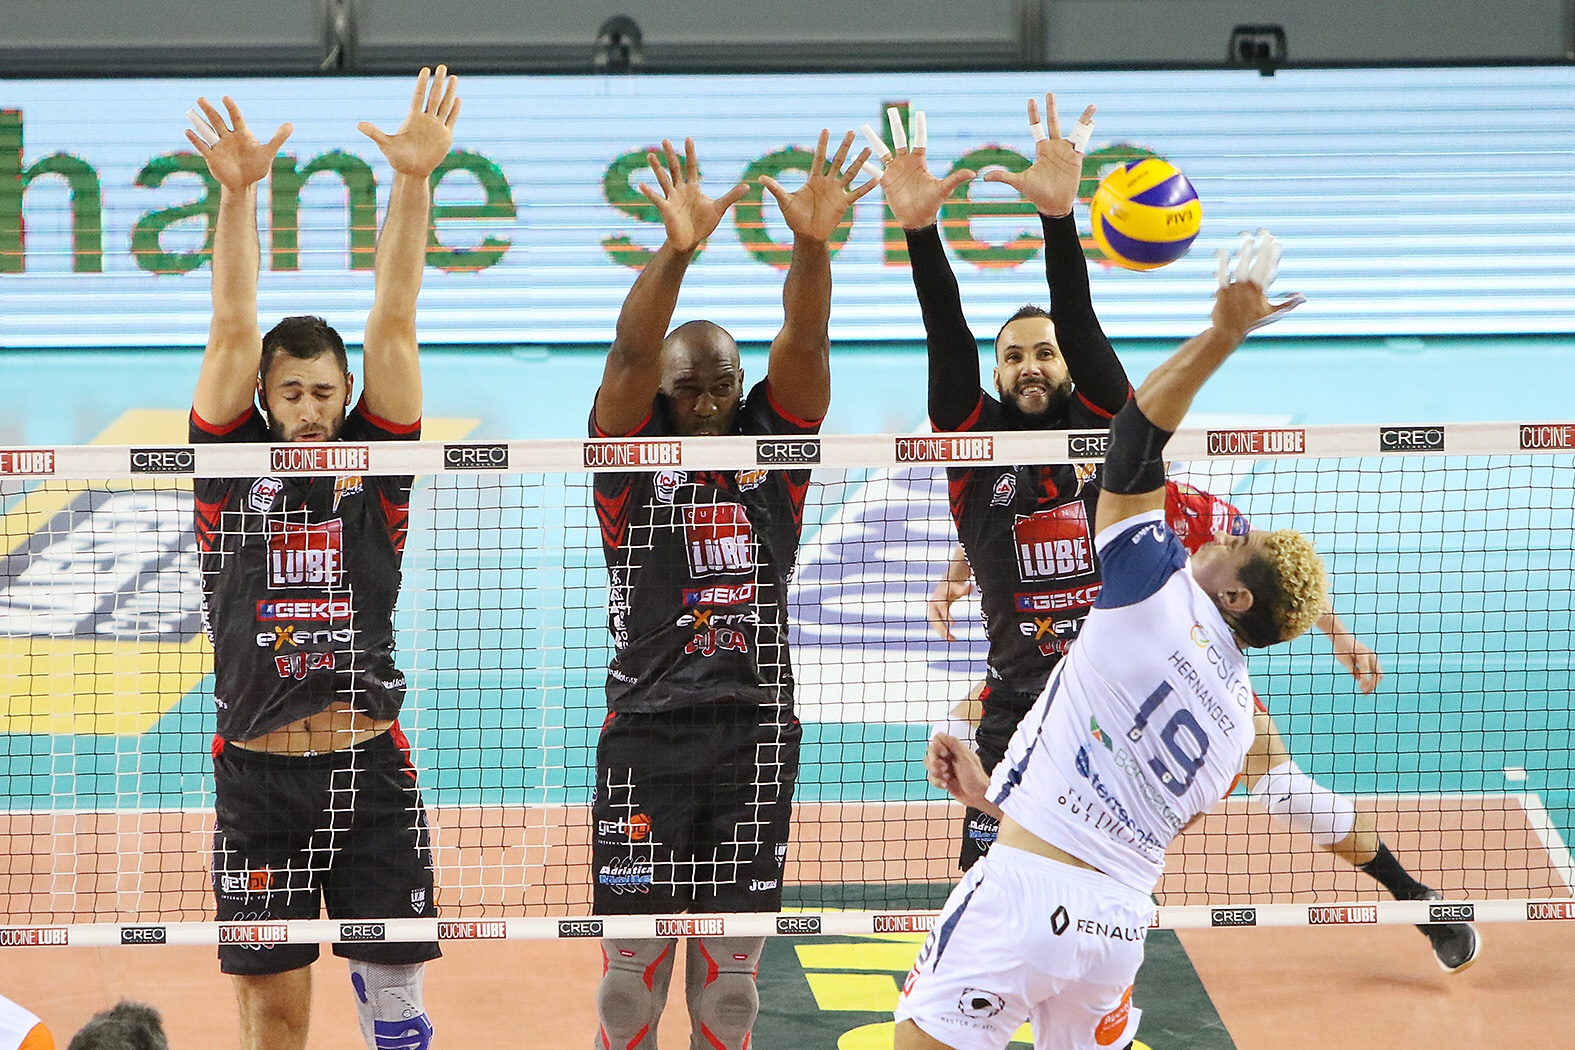 Lube Civitanova victorious in the advance of Round 9, Siena still winless after 8 round.